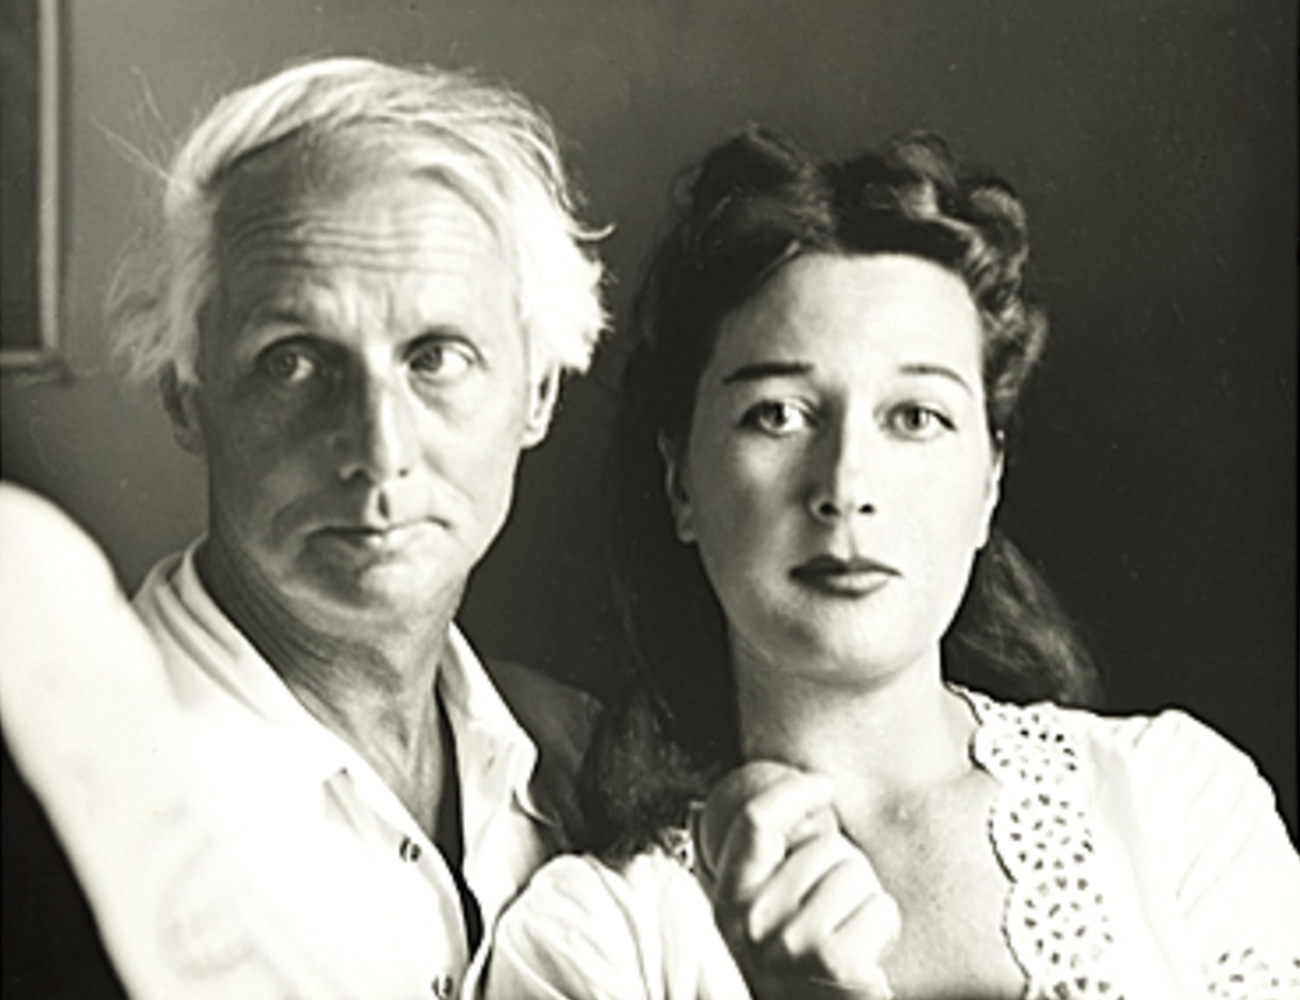 Dorothea Tanning and Max Ernst. Image from artfixdaily.com